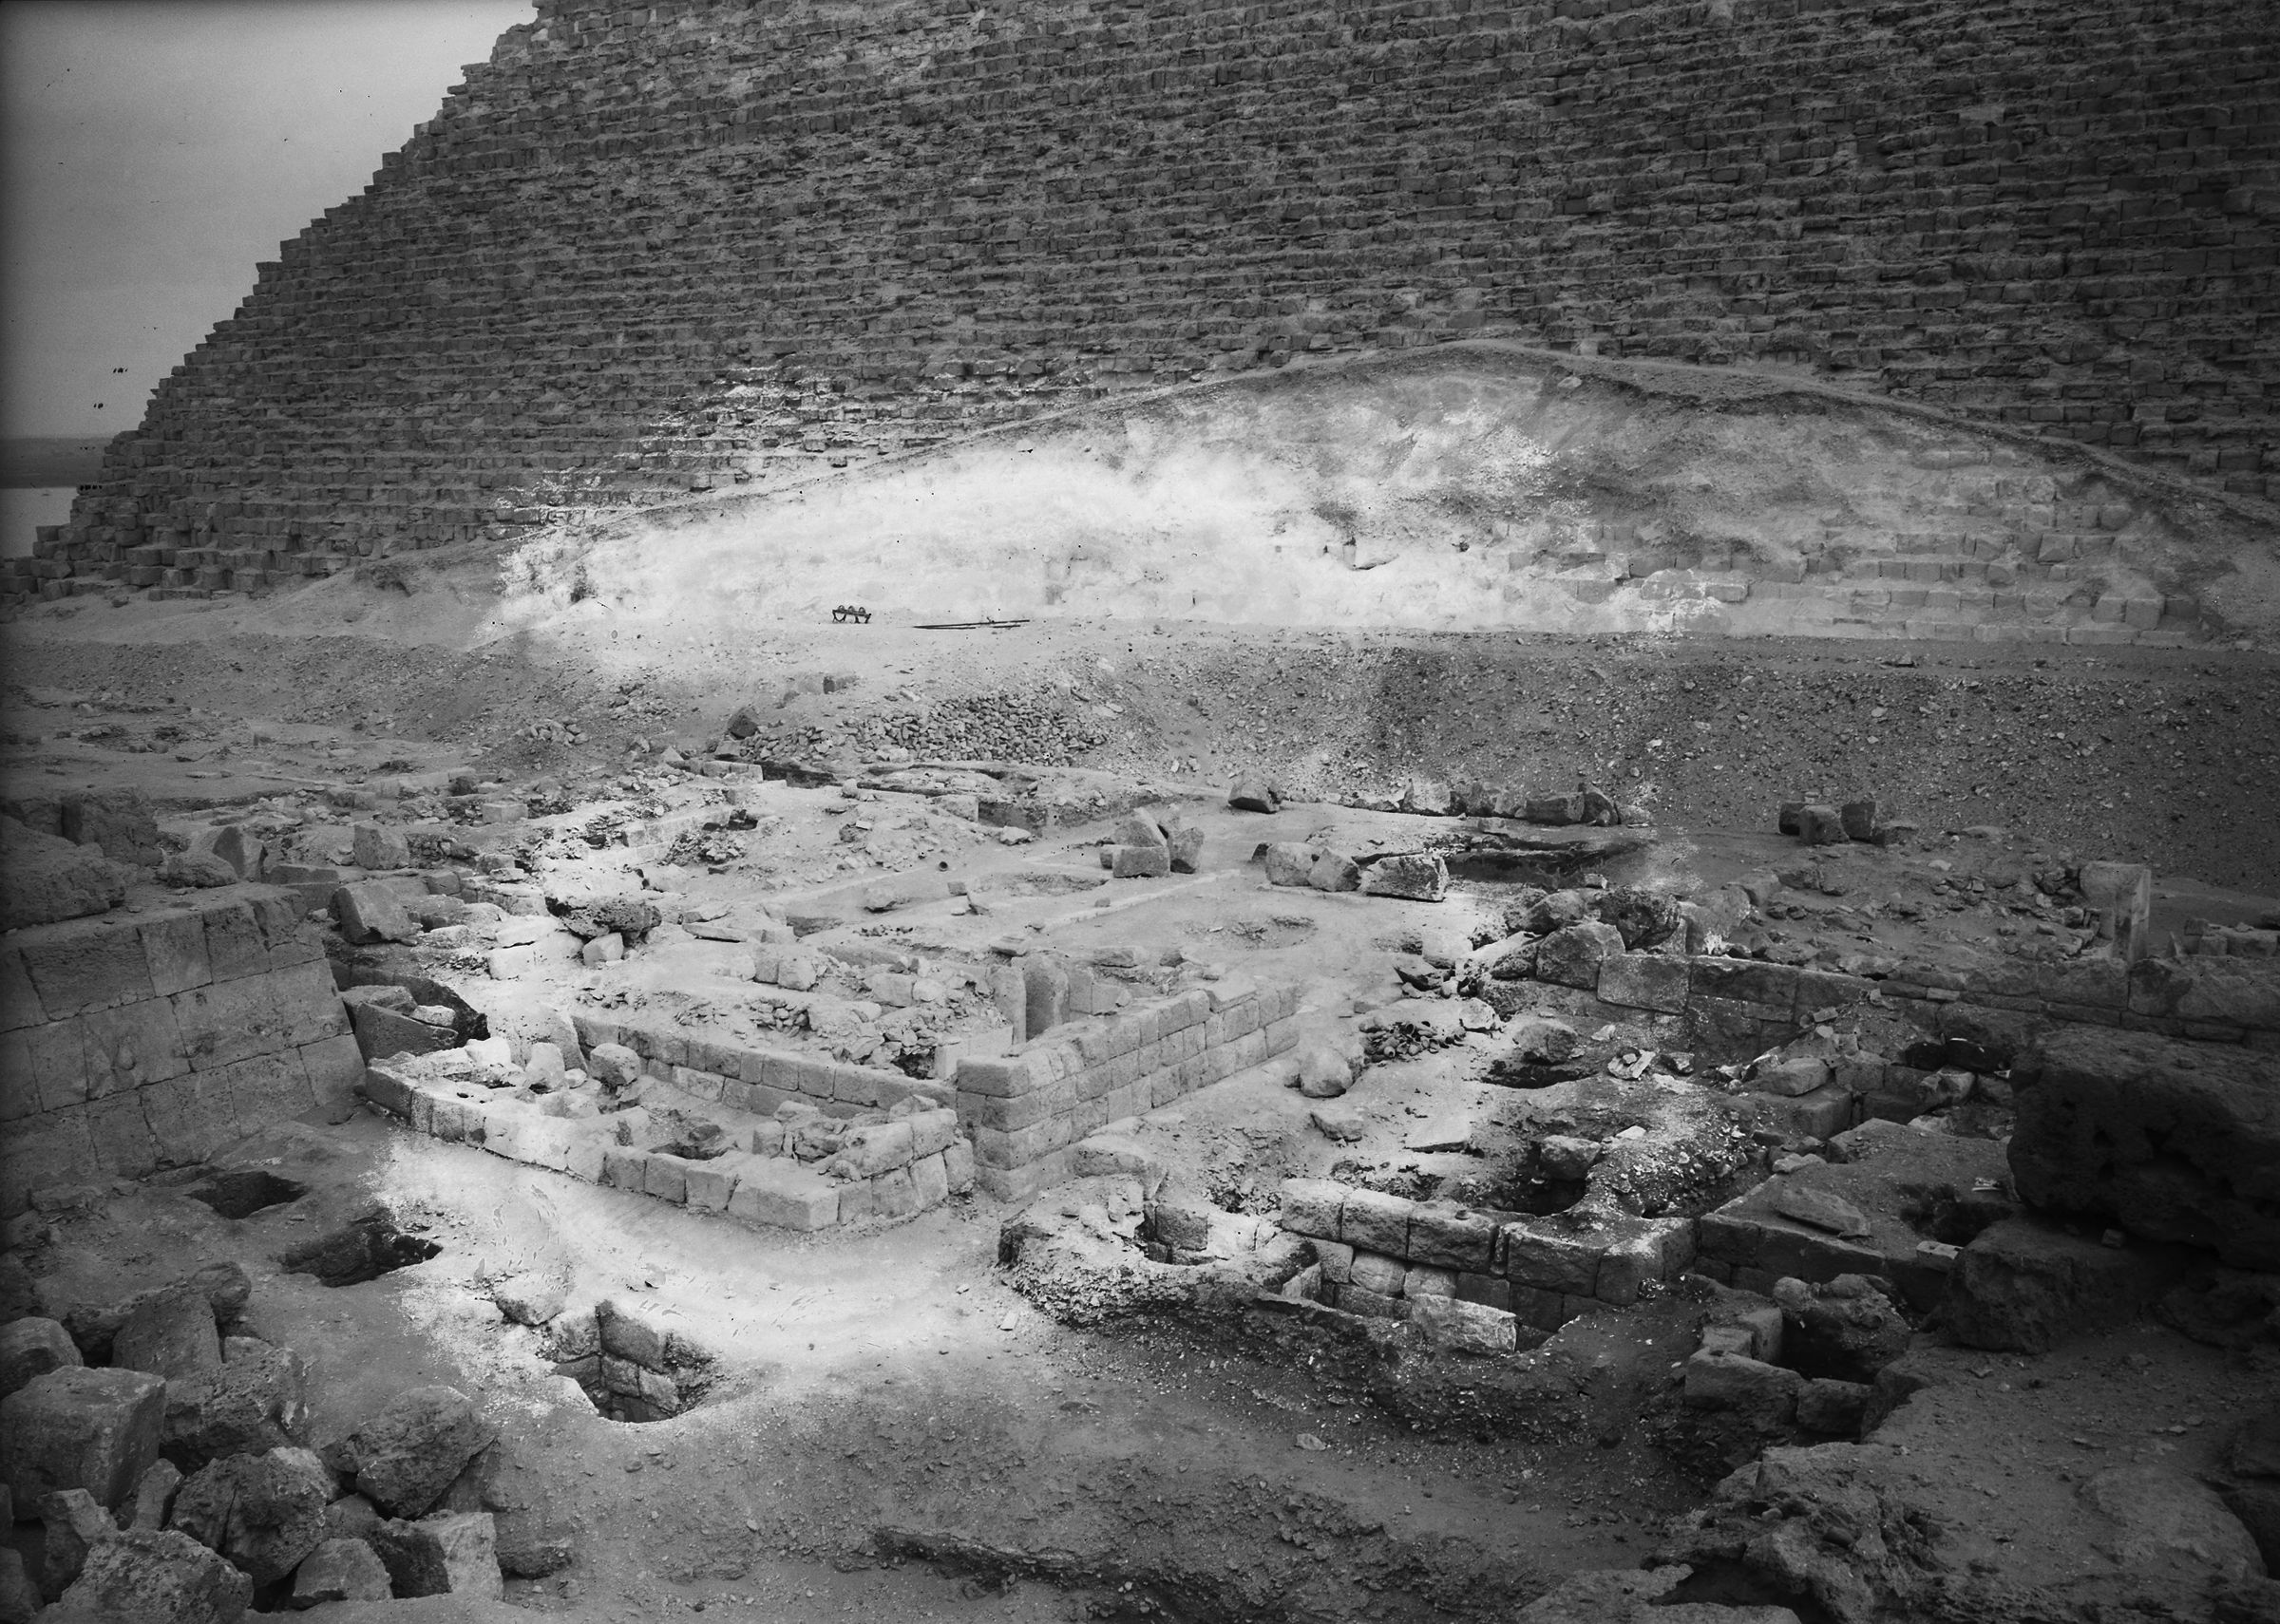 Western Cemetery: Site: Giza; View: G 5230, G 5231, G 5231a, G 5234, G 5235